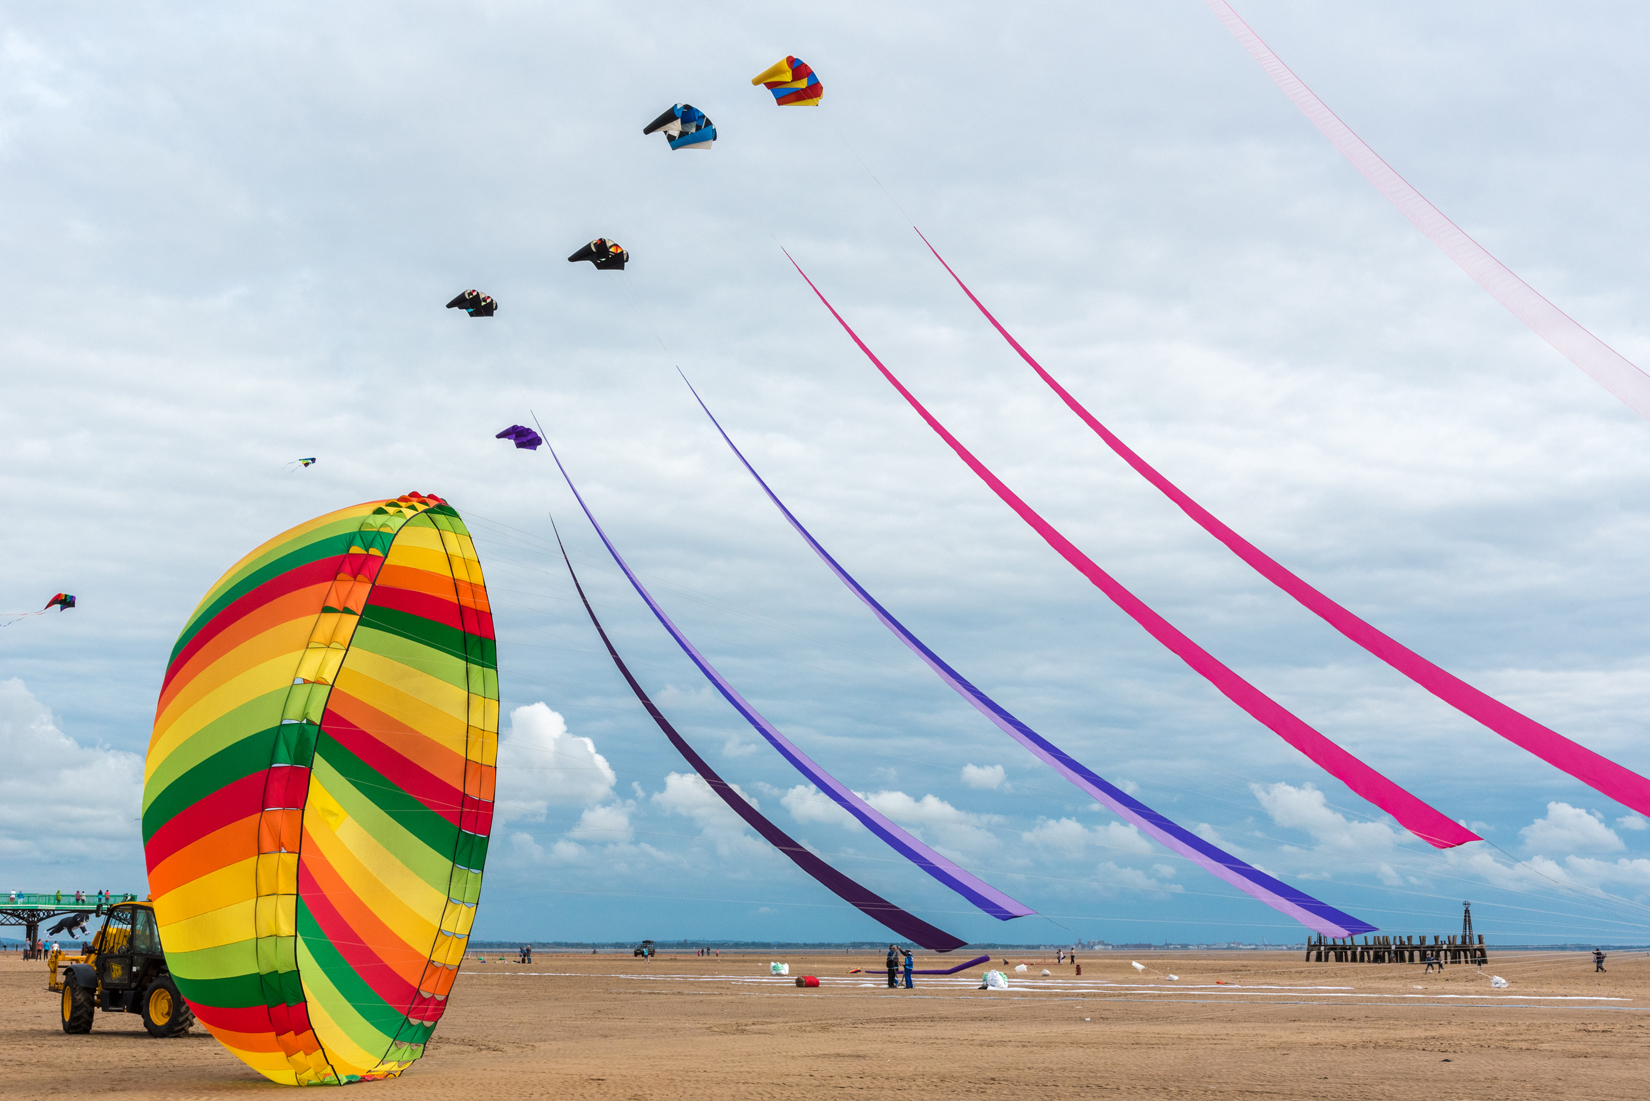 The kite-drawn sails sway in concert with the circular ring kite.